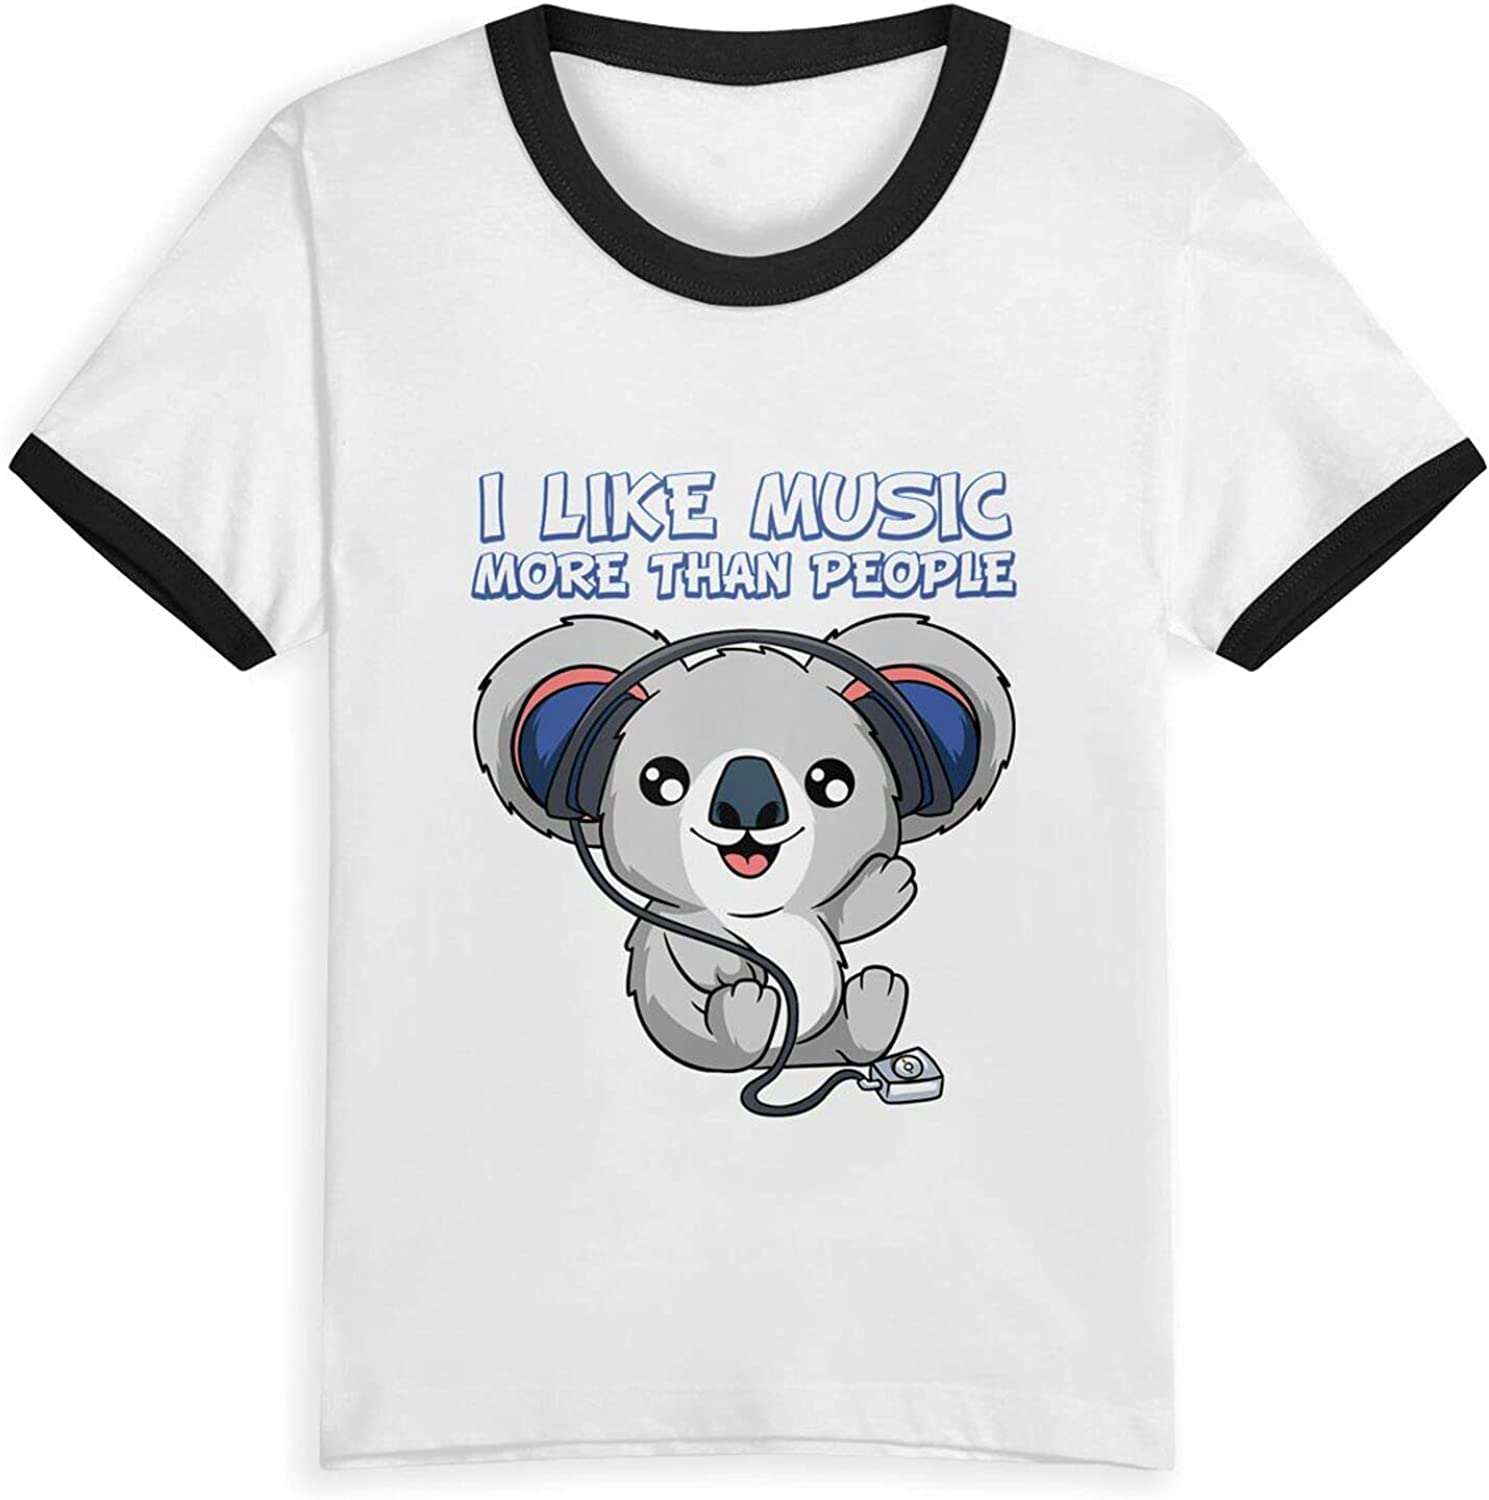 I Like Music More Than People Koala T-Shirts Novelty for Girls Tees with Cool Designs